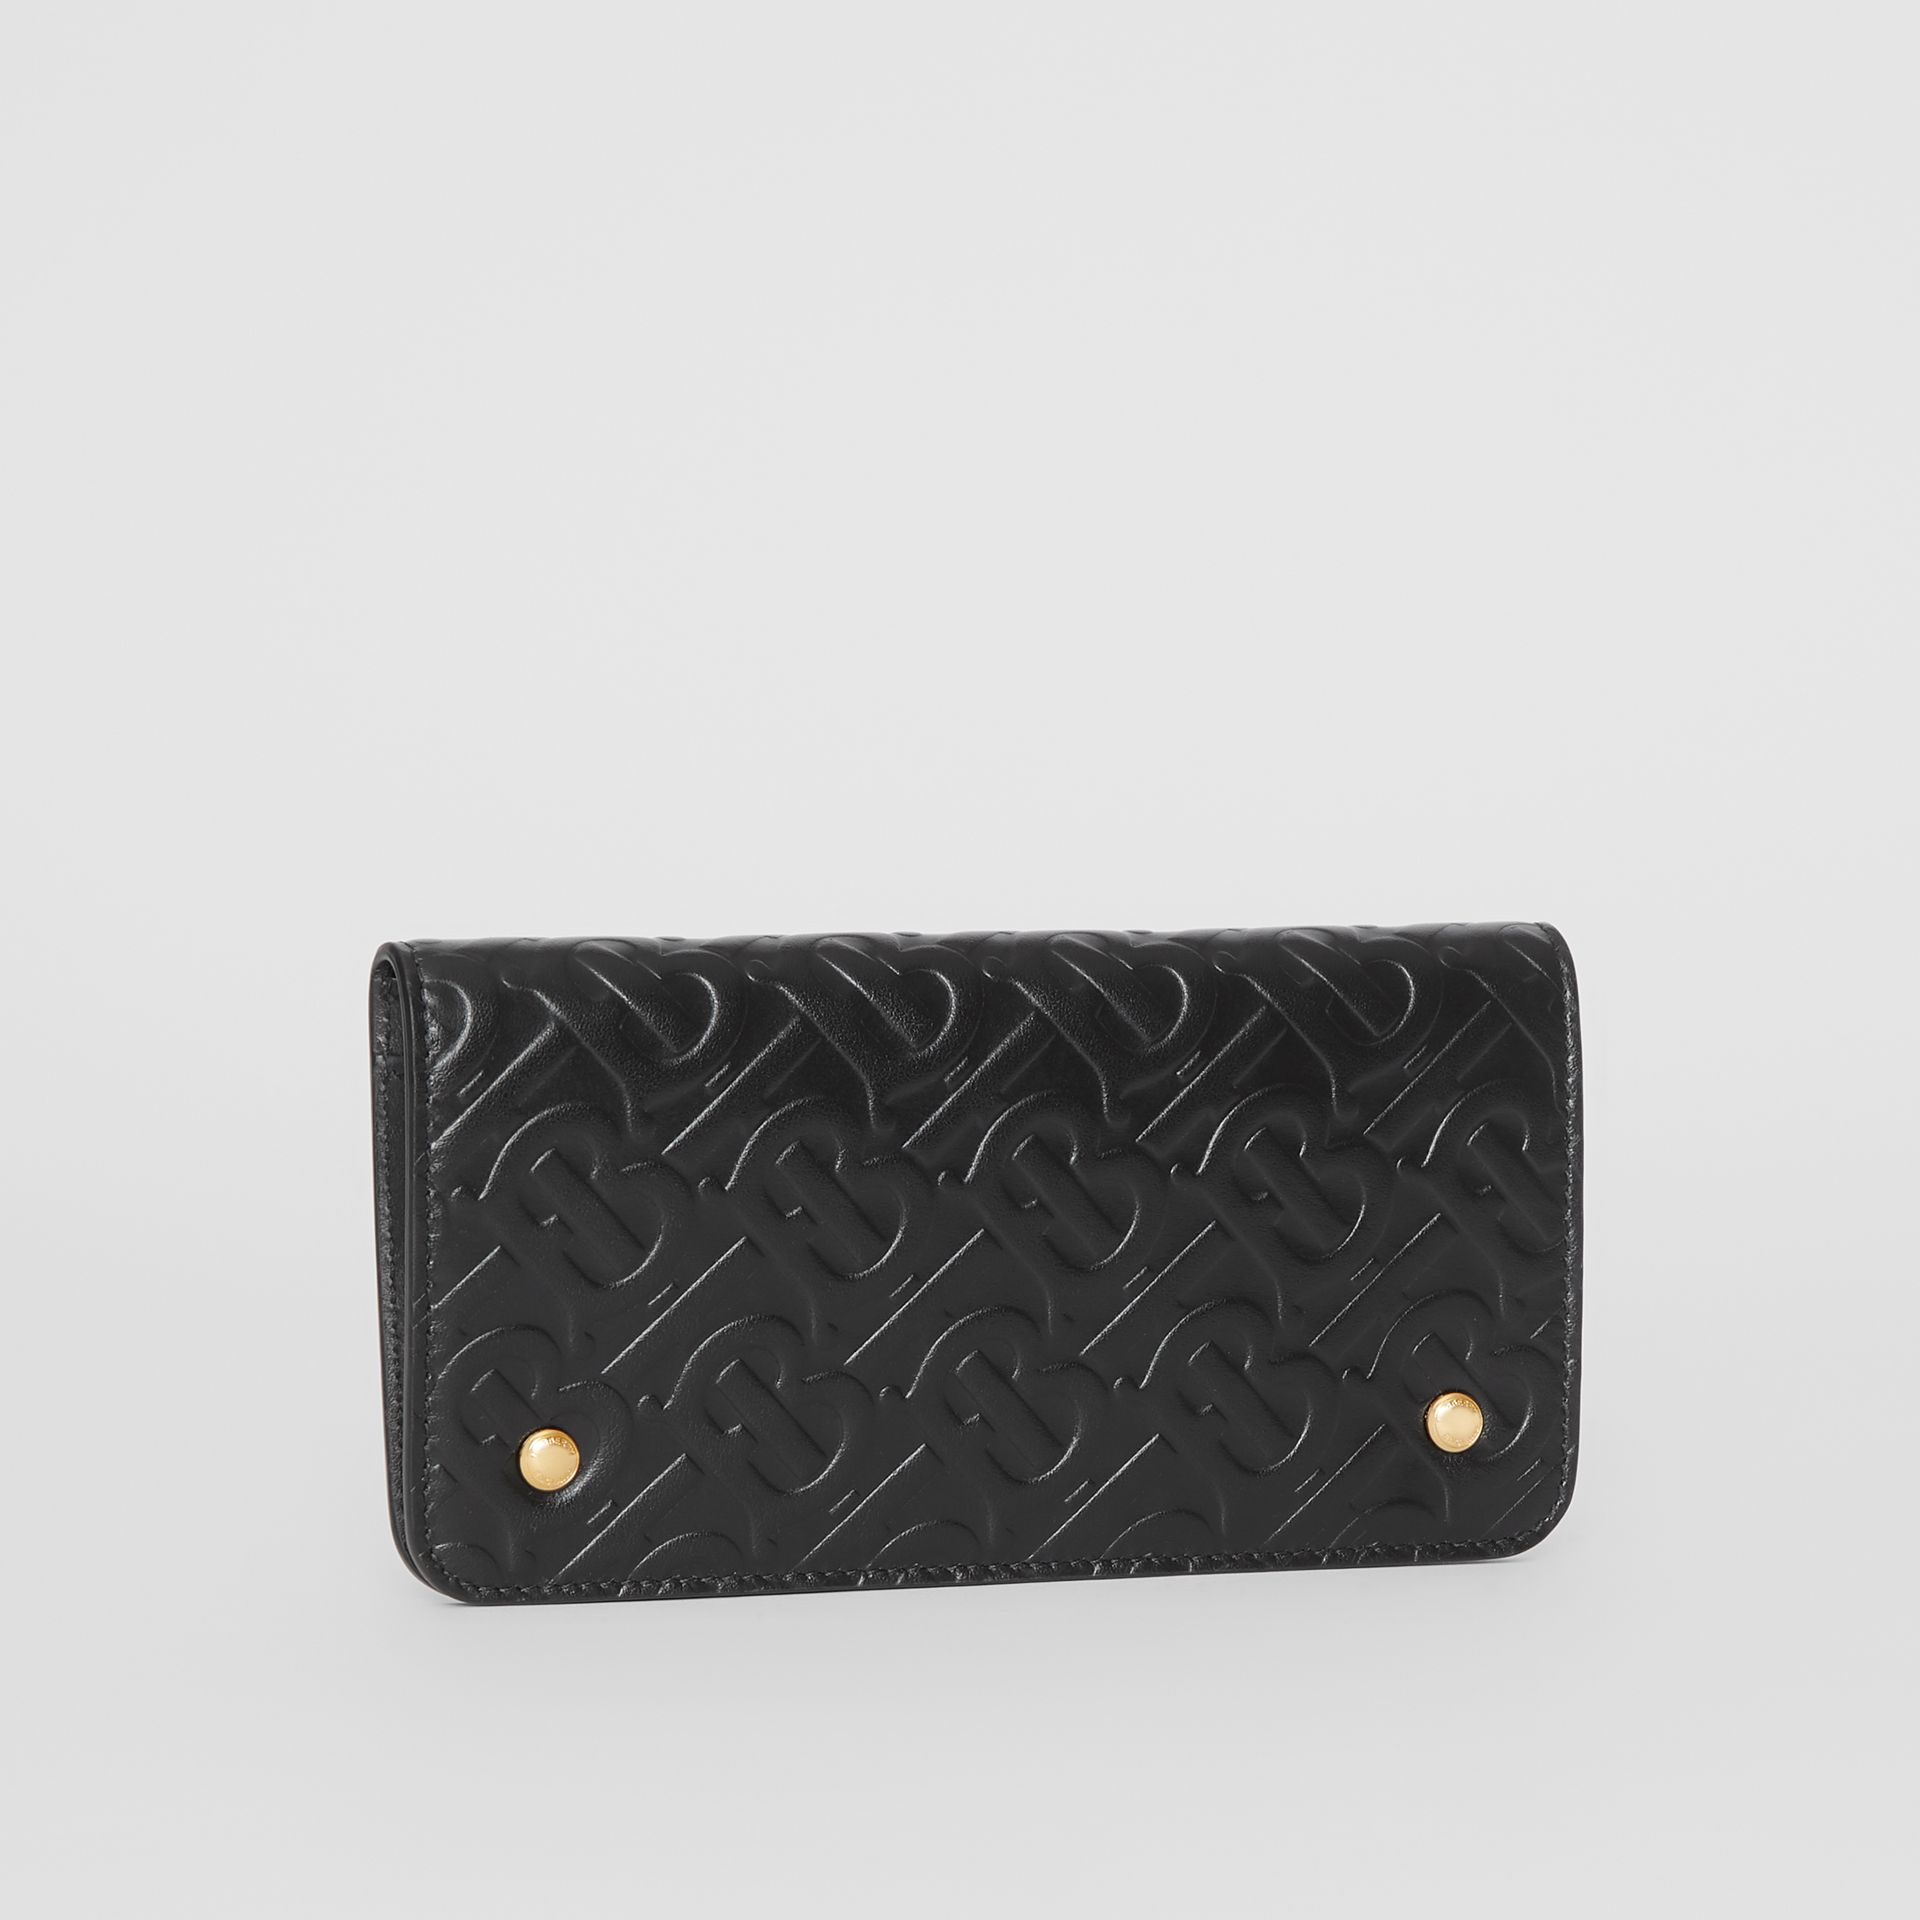 Monogram Leather Phone Wallet in Black | Burberry United Kingdom - gallery image 3